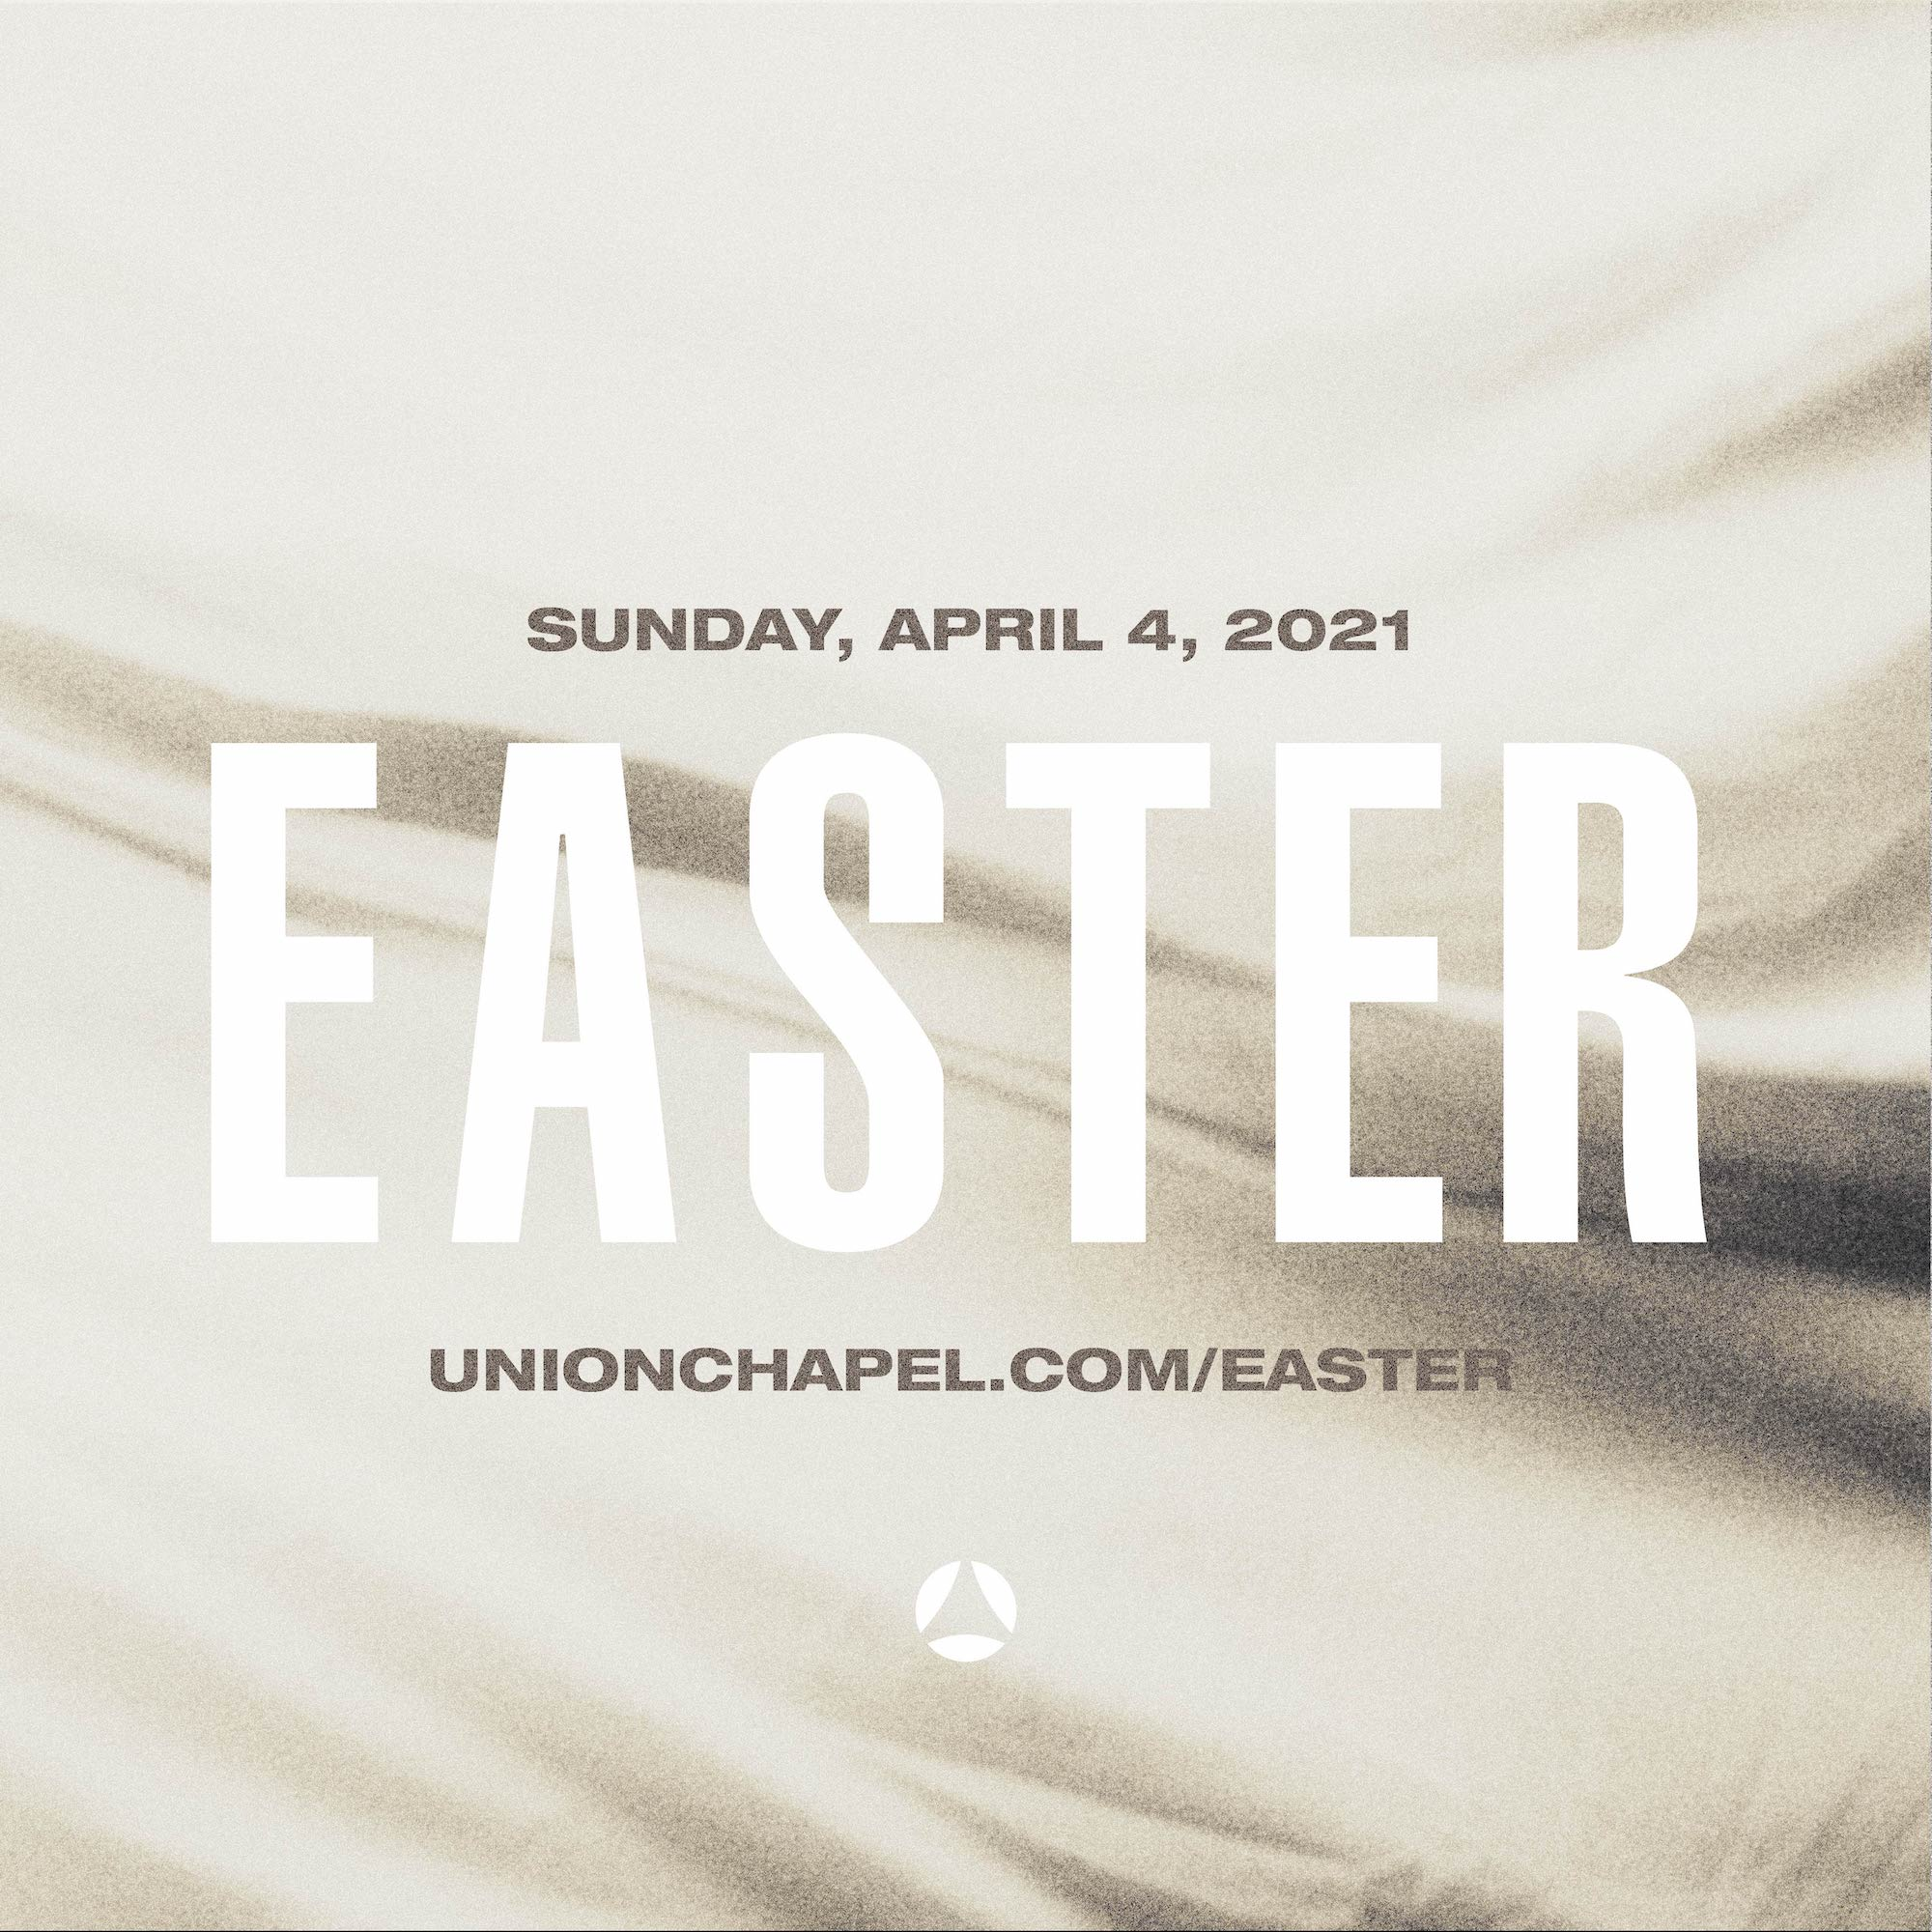 A square image to be shared as invitation that says, Sunday, April 4, 2021. Easter. Unionchapel.com/easter.